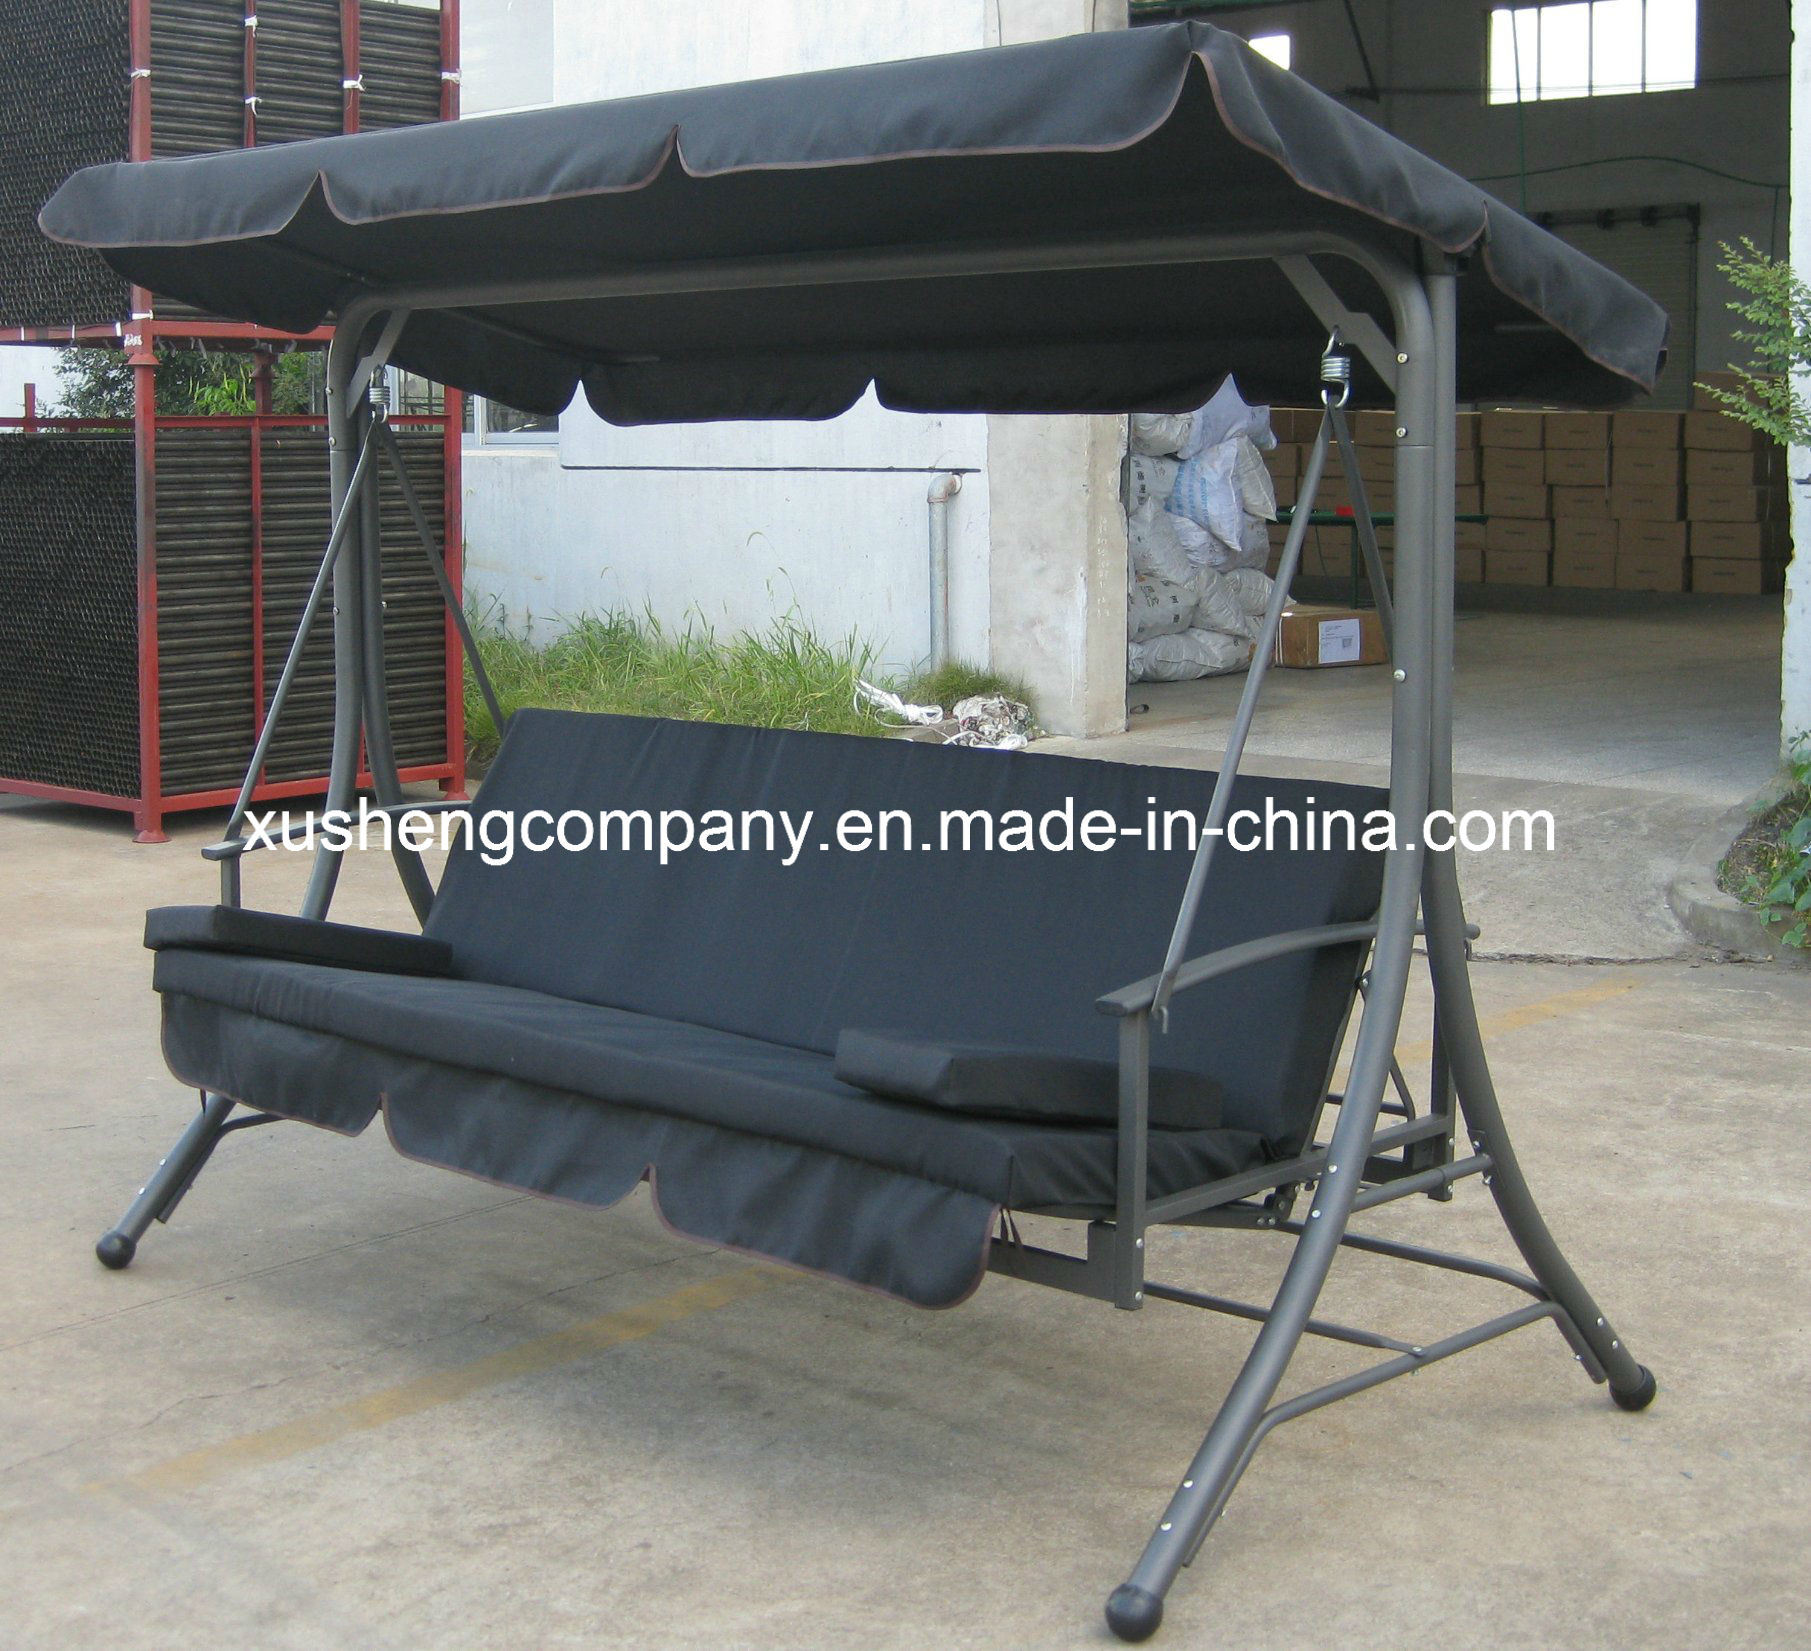 Picture of: China Luxury High Quality Outdoor Garden Swing Chair With Pillows China Garden Swing Chair Swing Bed